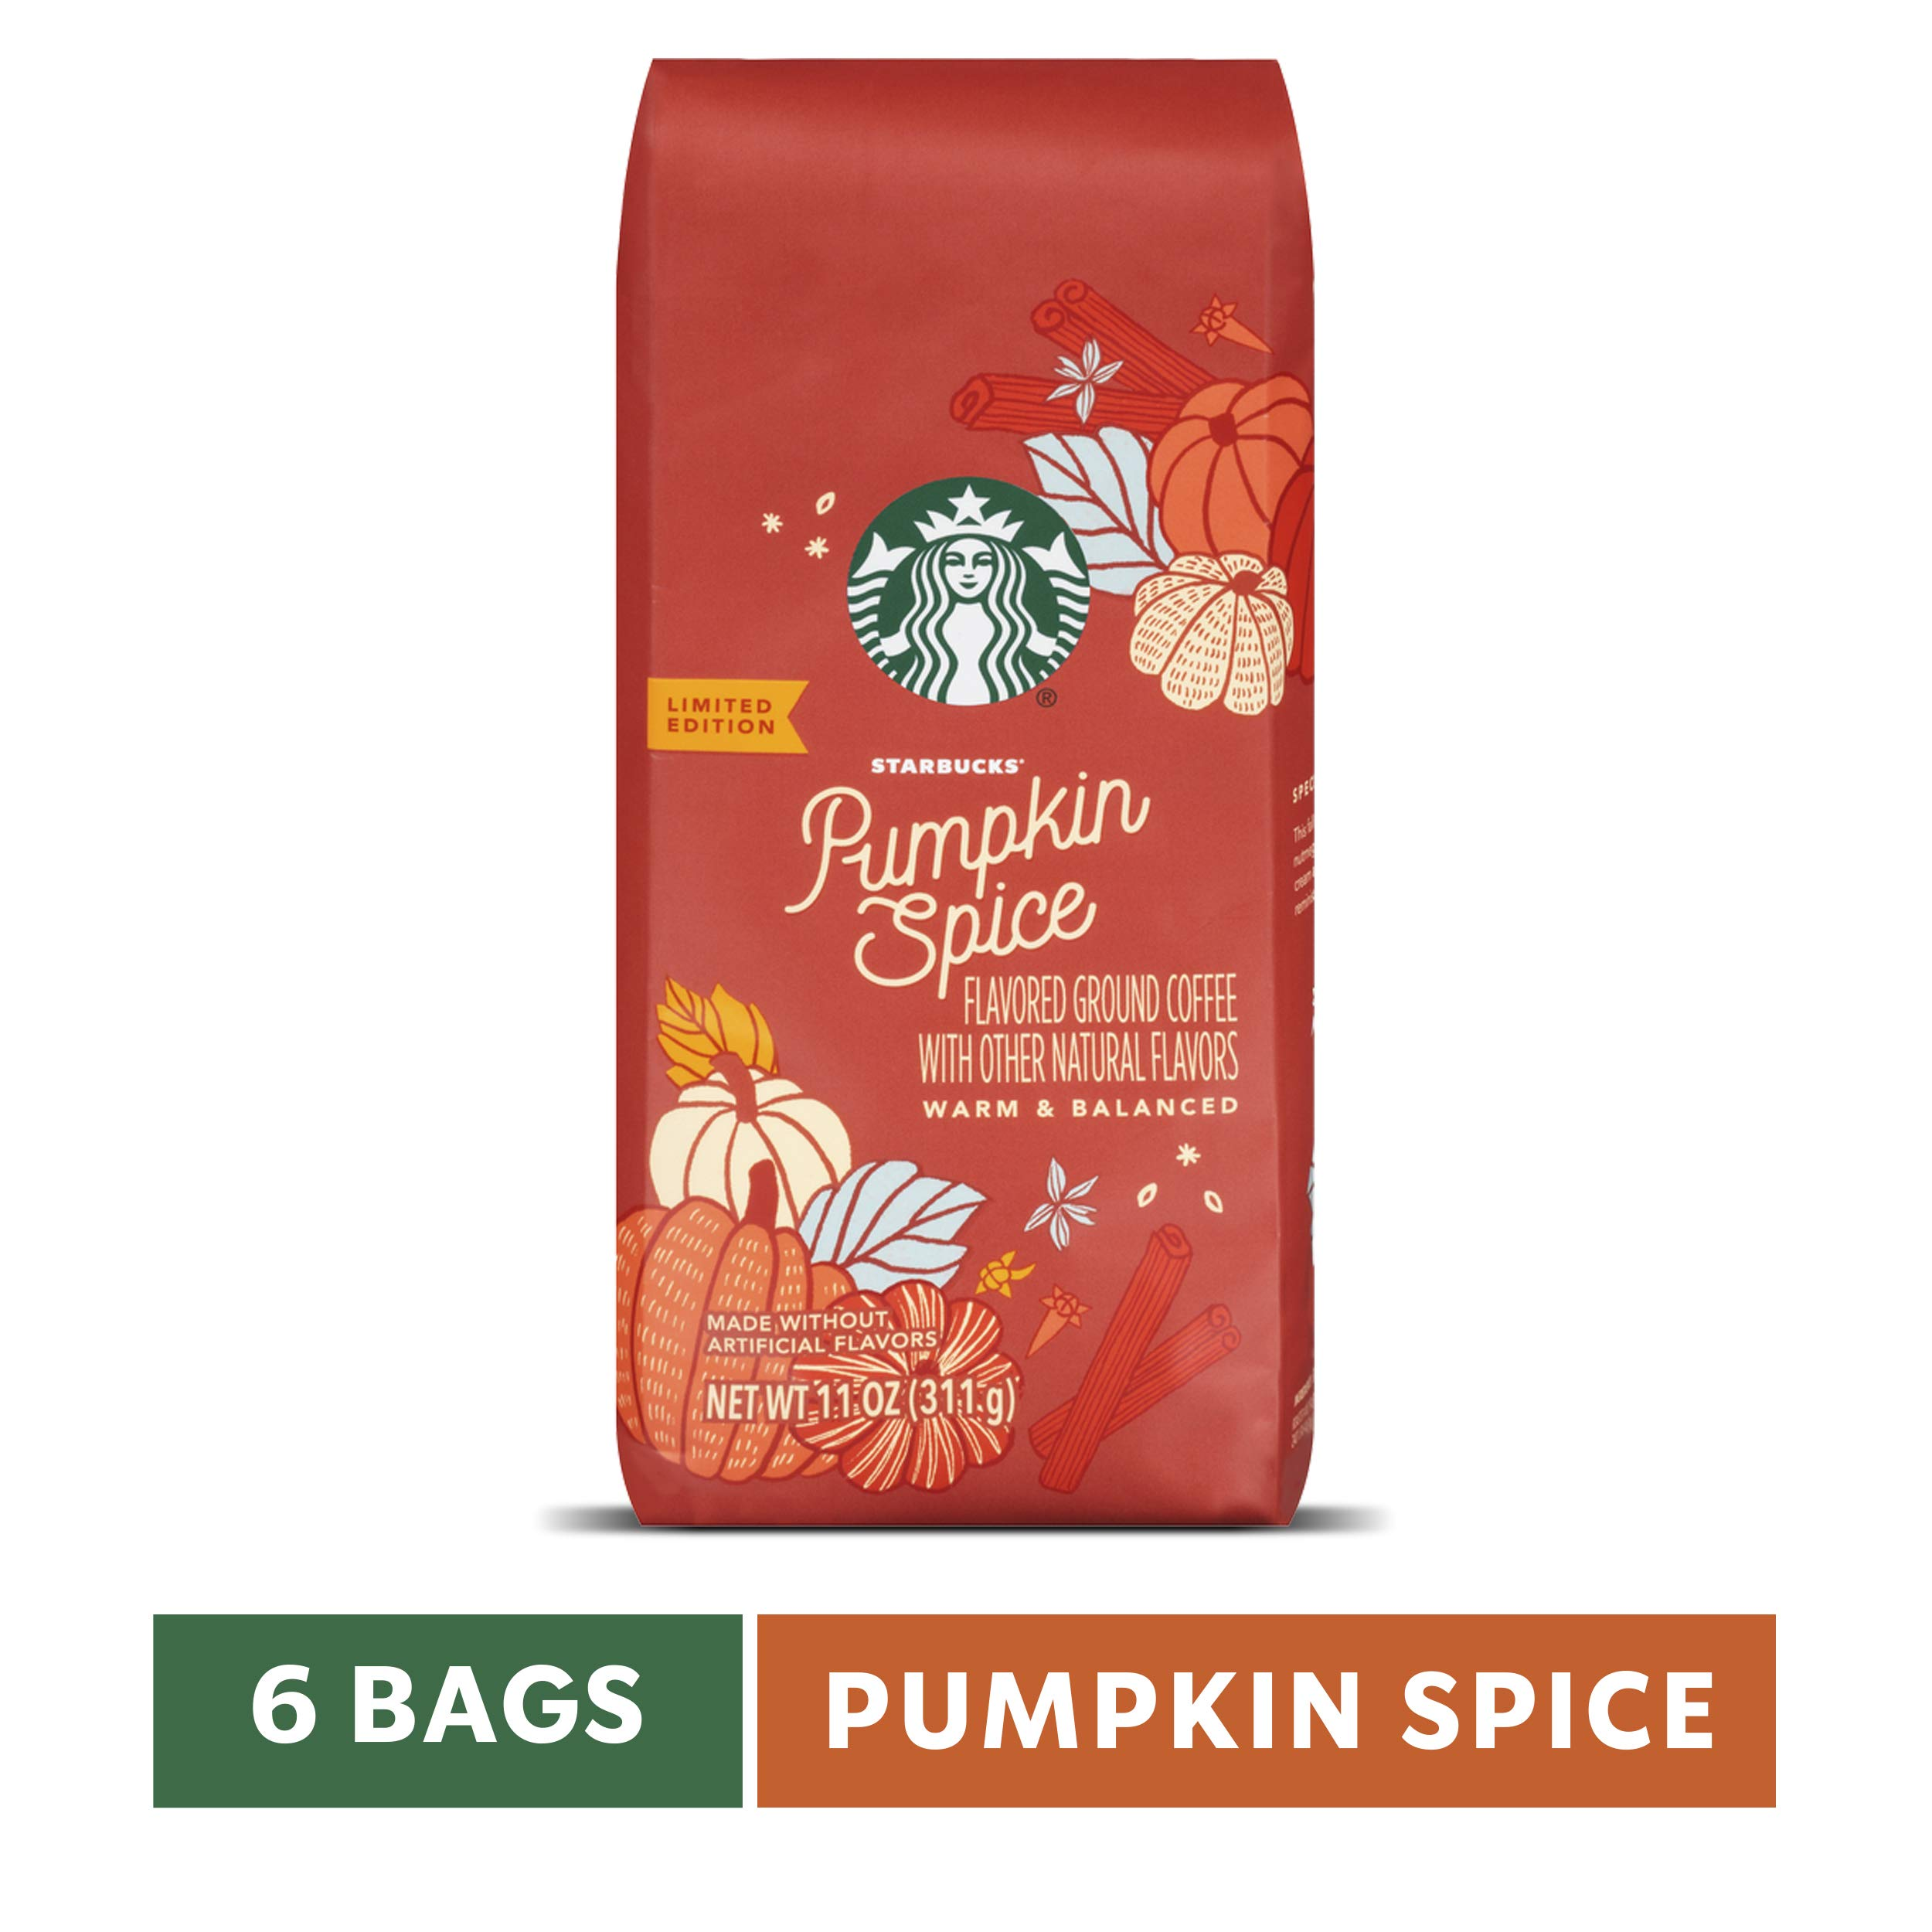 Starbucks Pumpkin Spice Flavored Ground Coffee, Six 11-oz. Bags by Starbucks